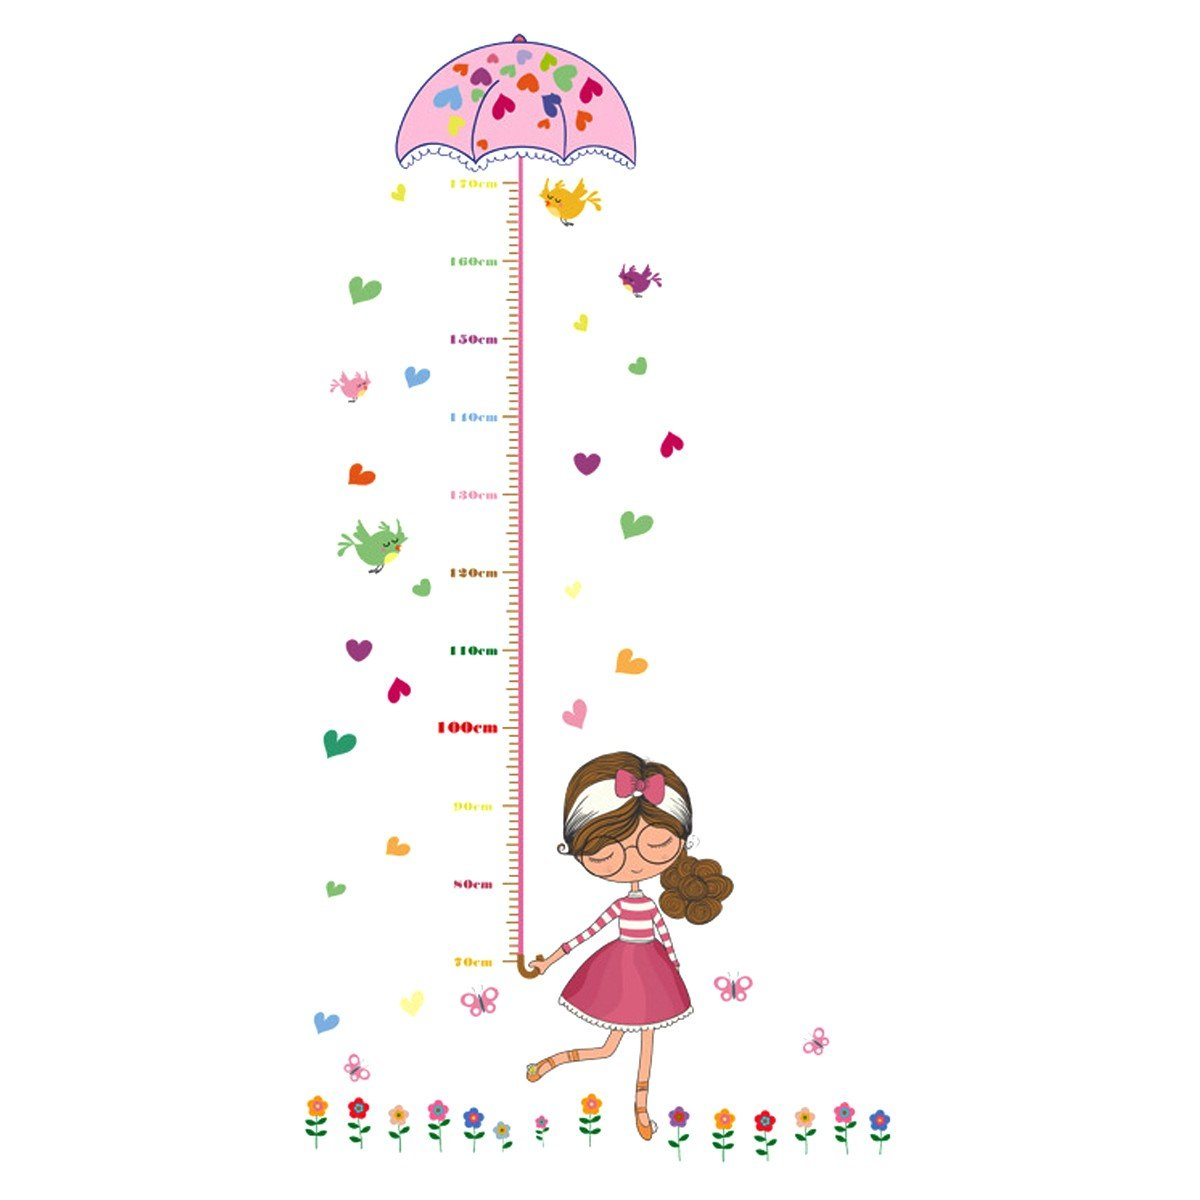 UNIQUEBELLA PVC Height Measurement Growth Chart for Kids Removable Nursery Wall Art Decals Stickers Cartoon Umbrella Wall Decorative for Girls Kid's Bedroom WUU53E